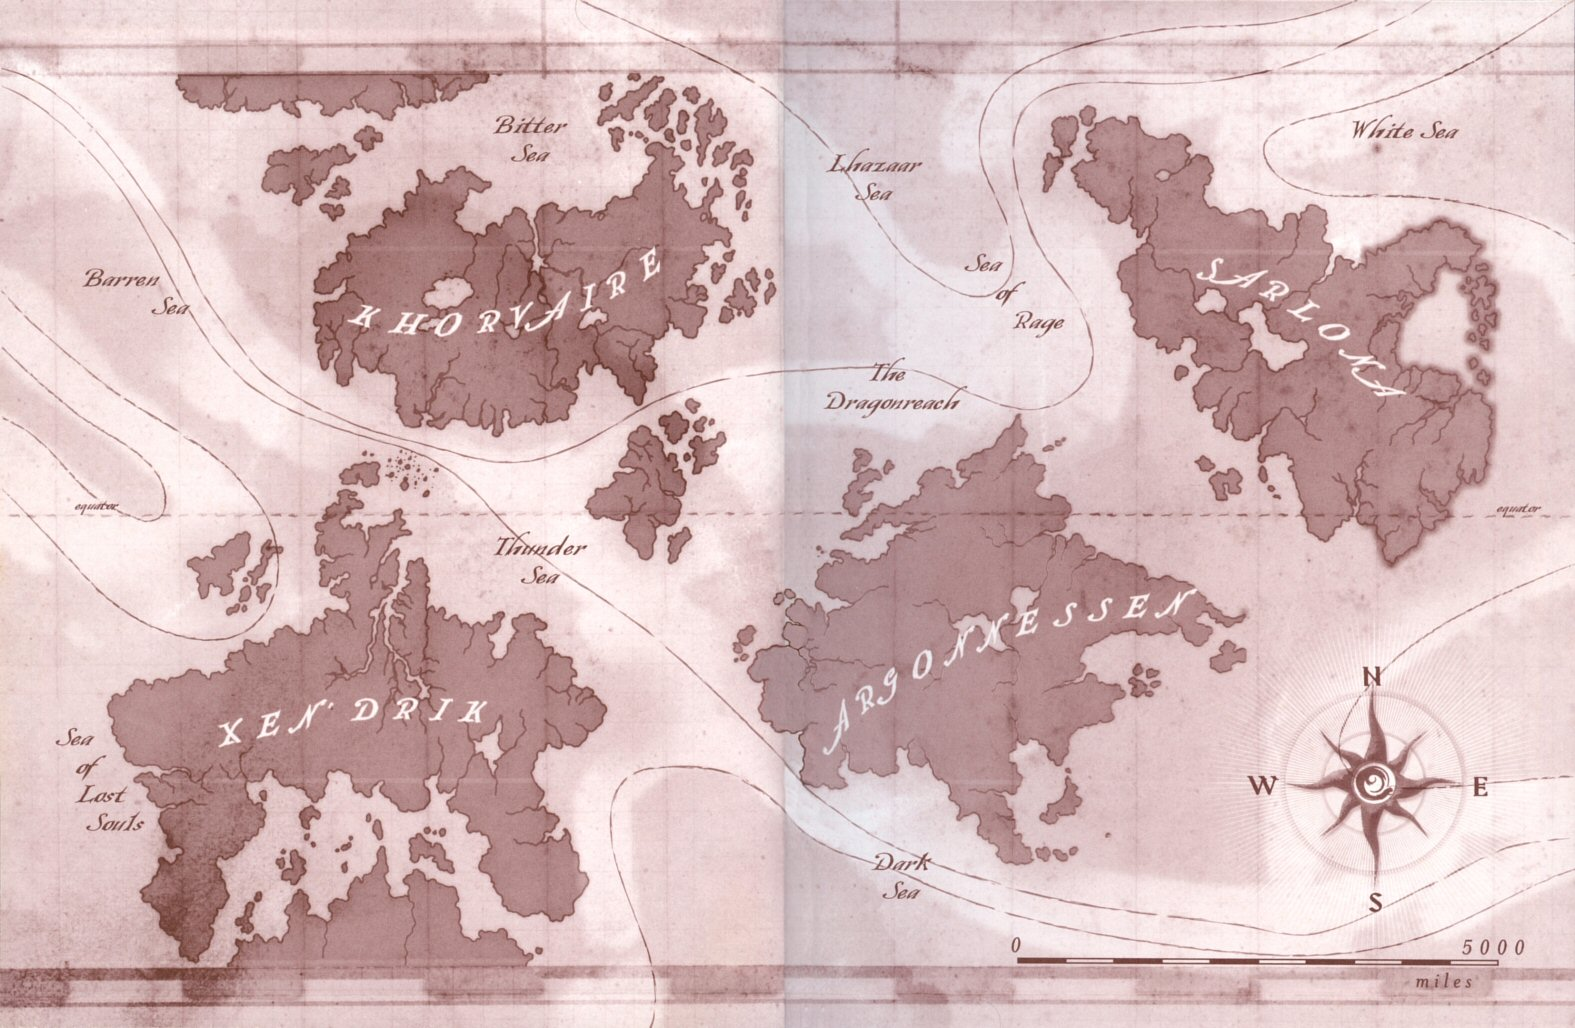 Eberron%20World%20Map%2001.jpg